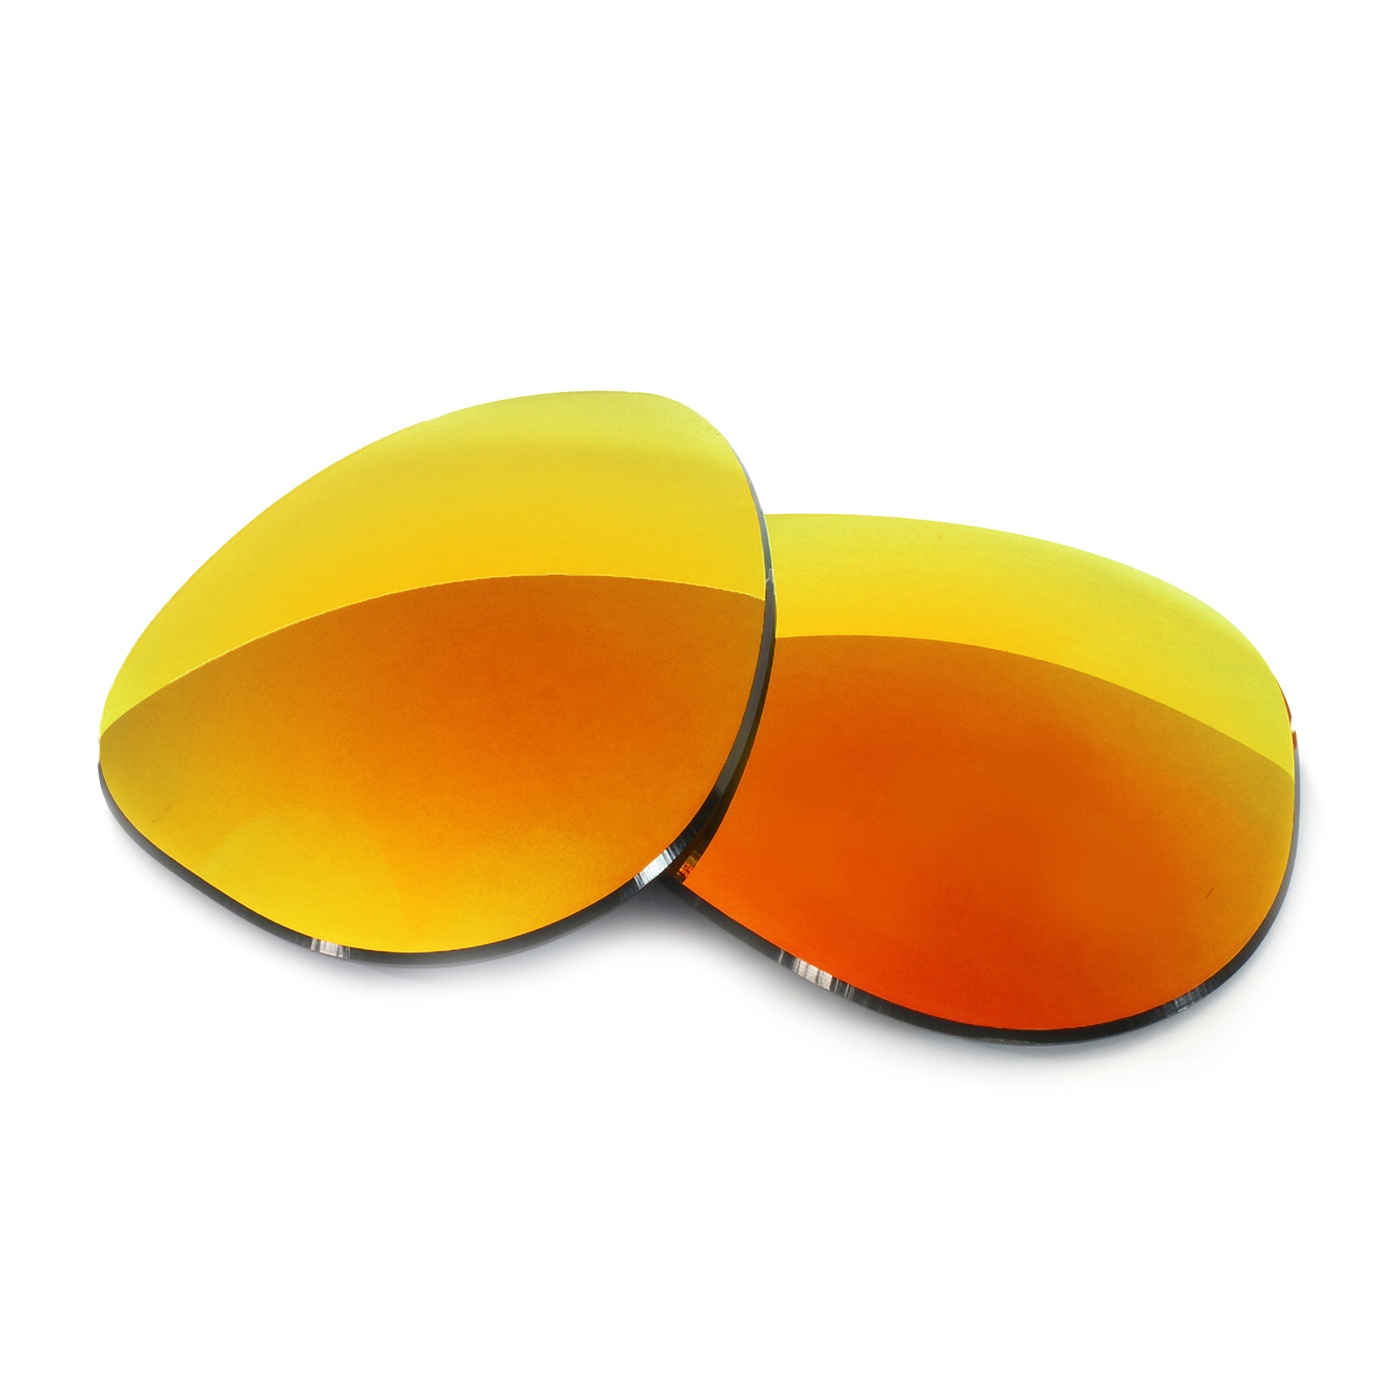 Fuse Lenses for Dolce & Gabbana DG6078 (63mm) - Cascade Mirror Tint